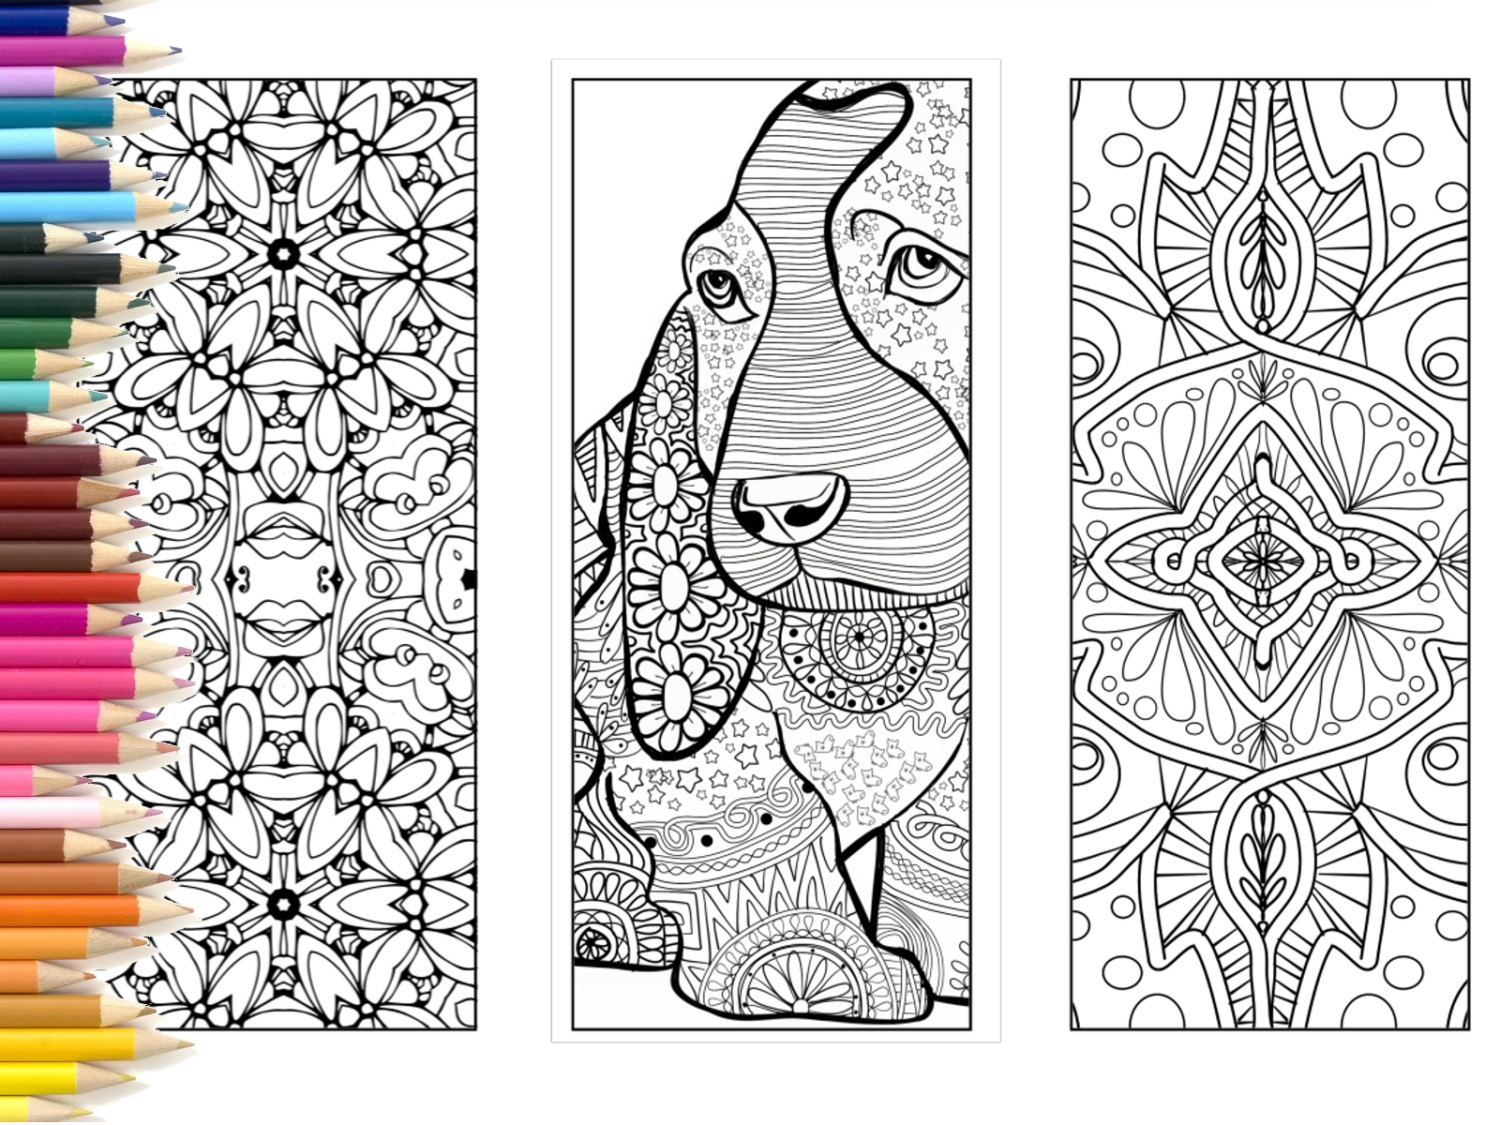 Coloring Pages ~ Coloring Pages Printable Bookmarks For Kids - Free Printable Bookmarks To Color